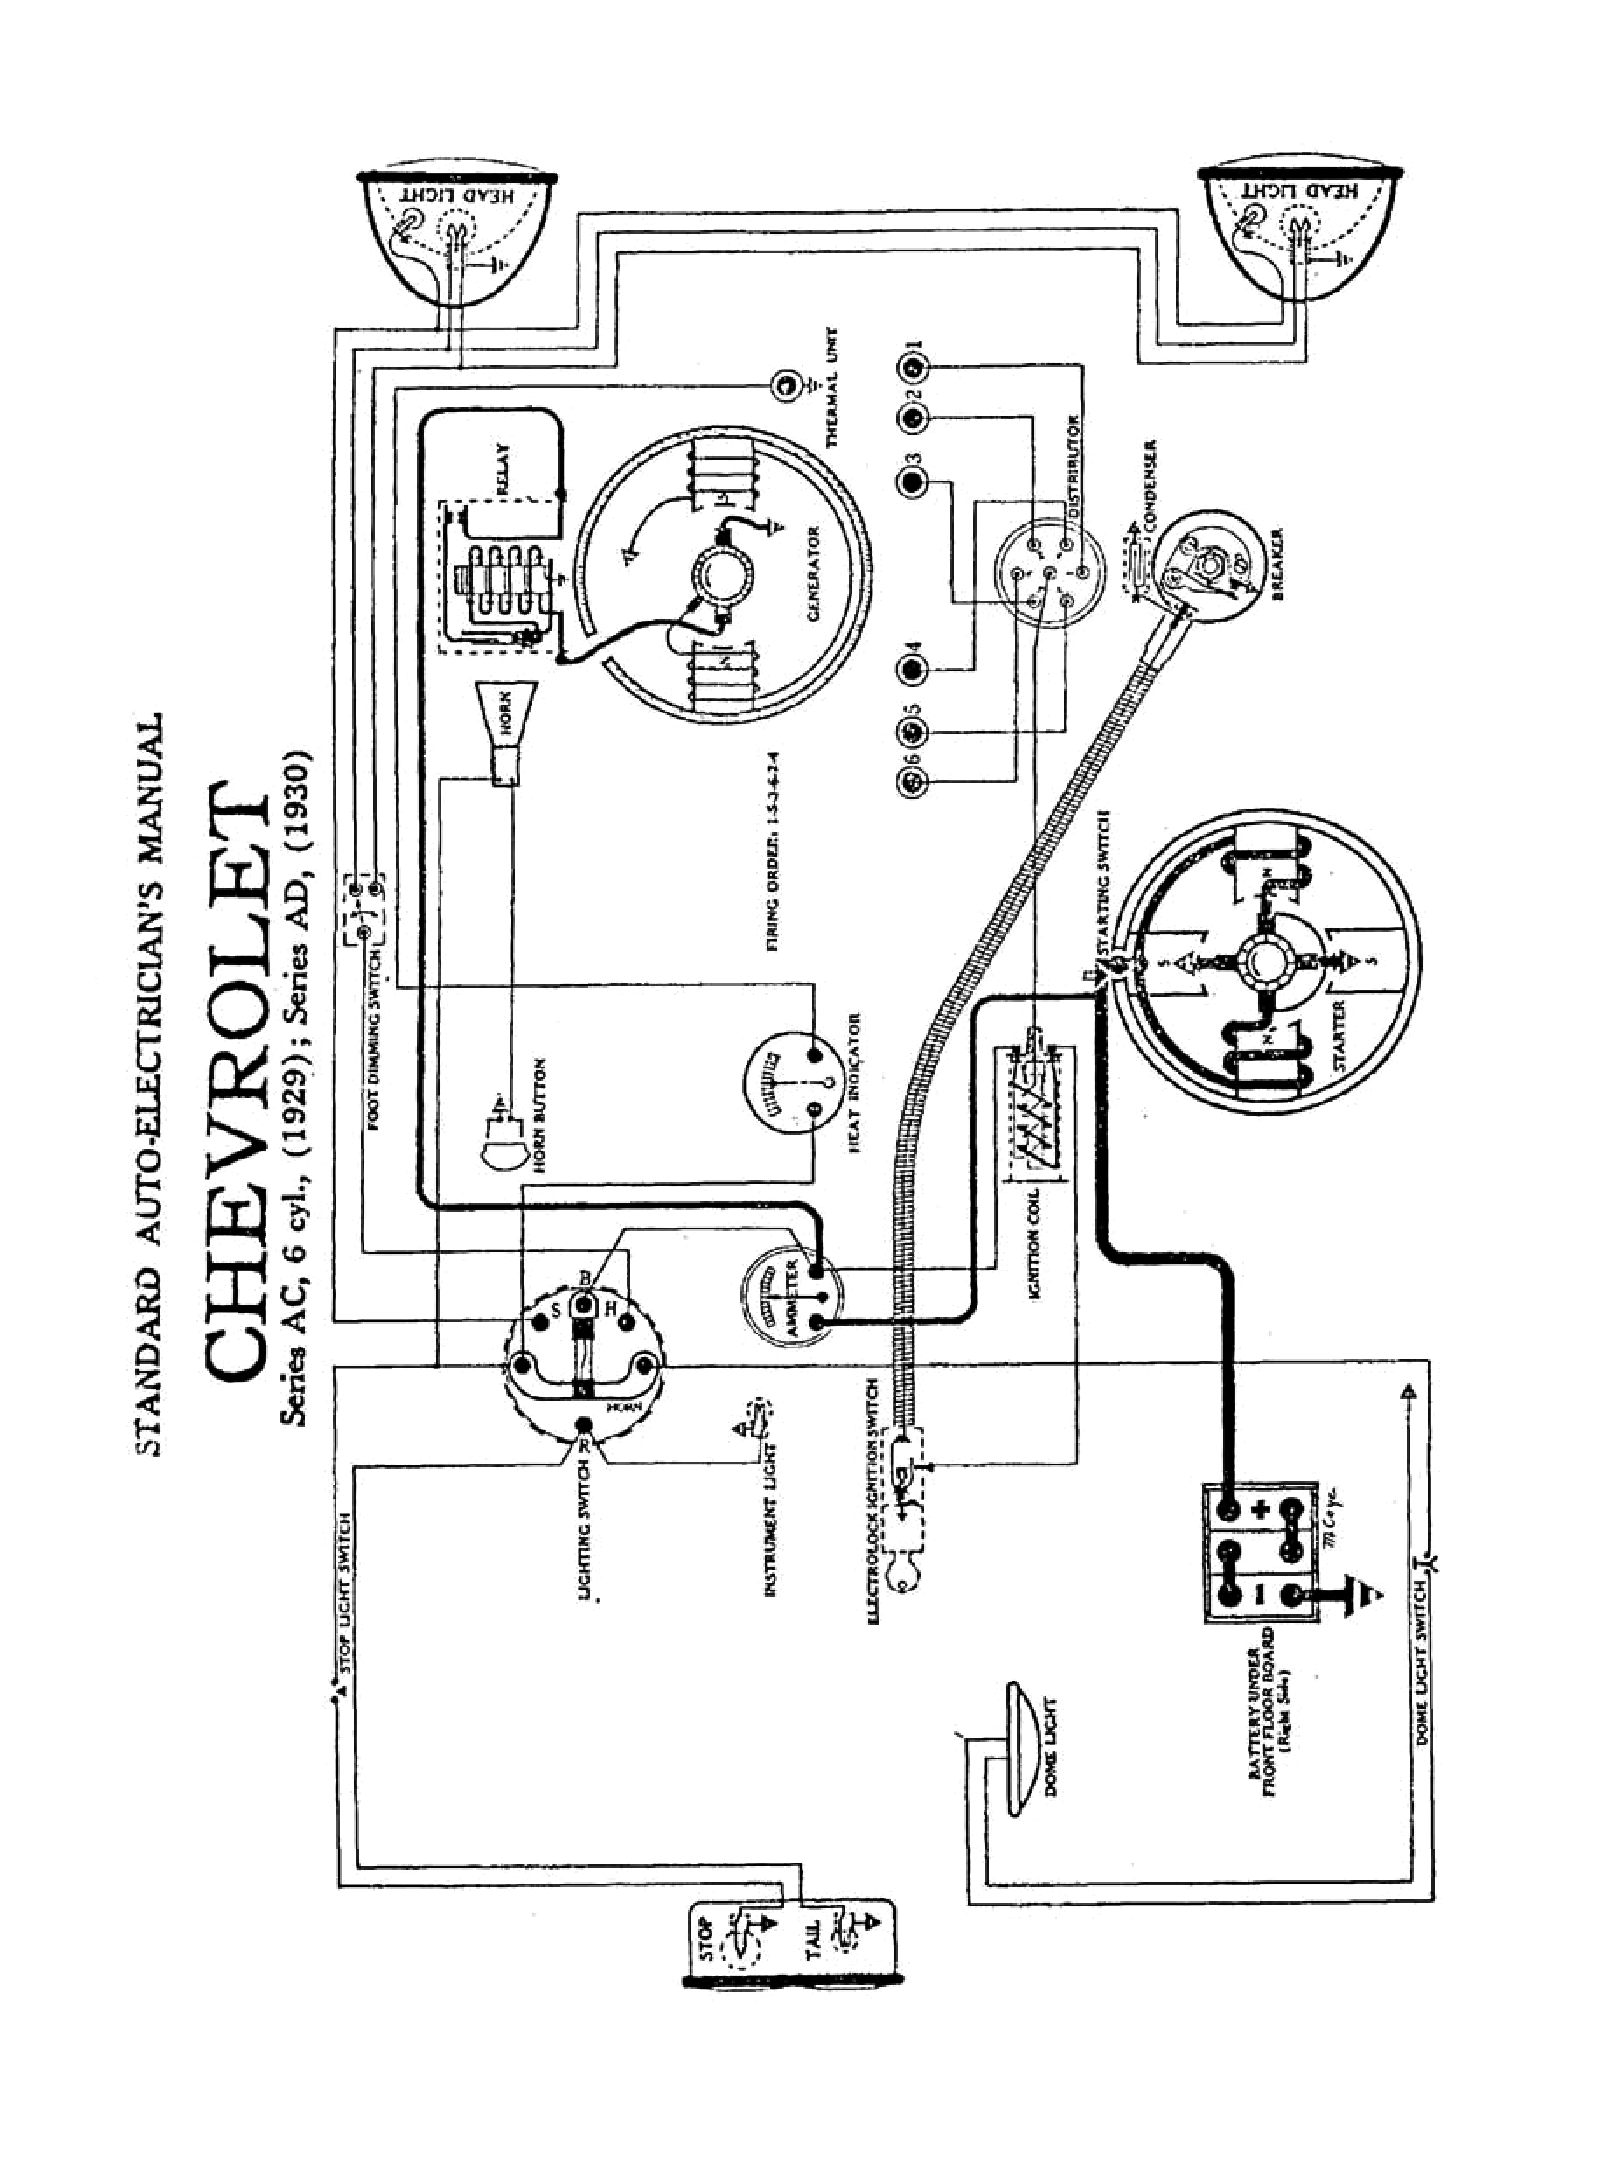 1929 chevy wiring diagram - wiring diagram wait-teta-a -  wait-teta-a.disnar.it  disnar.it